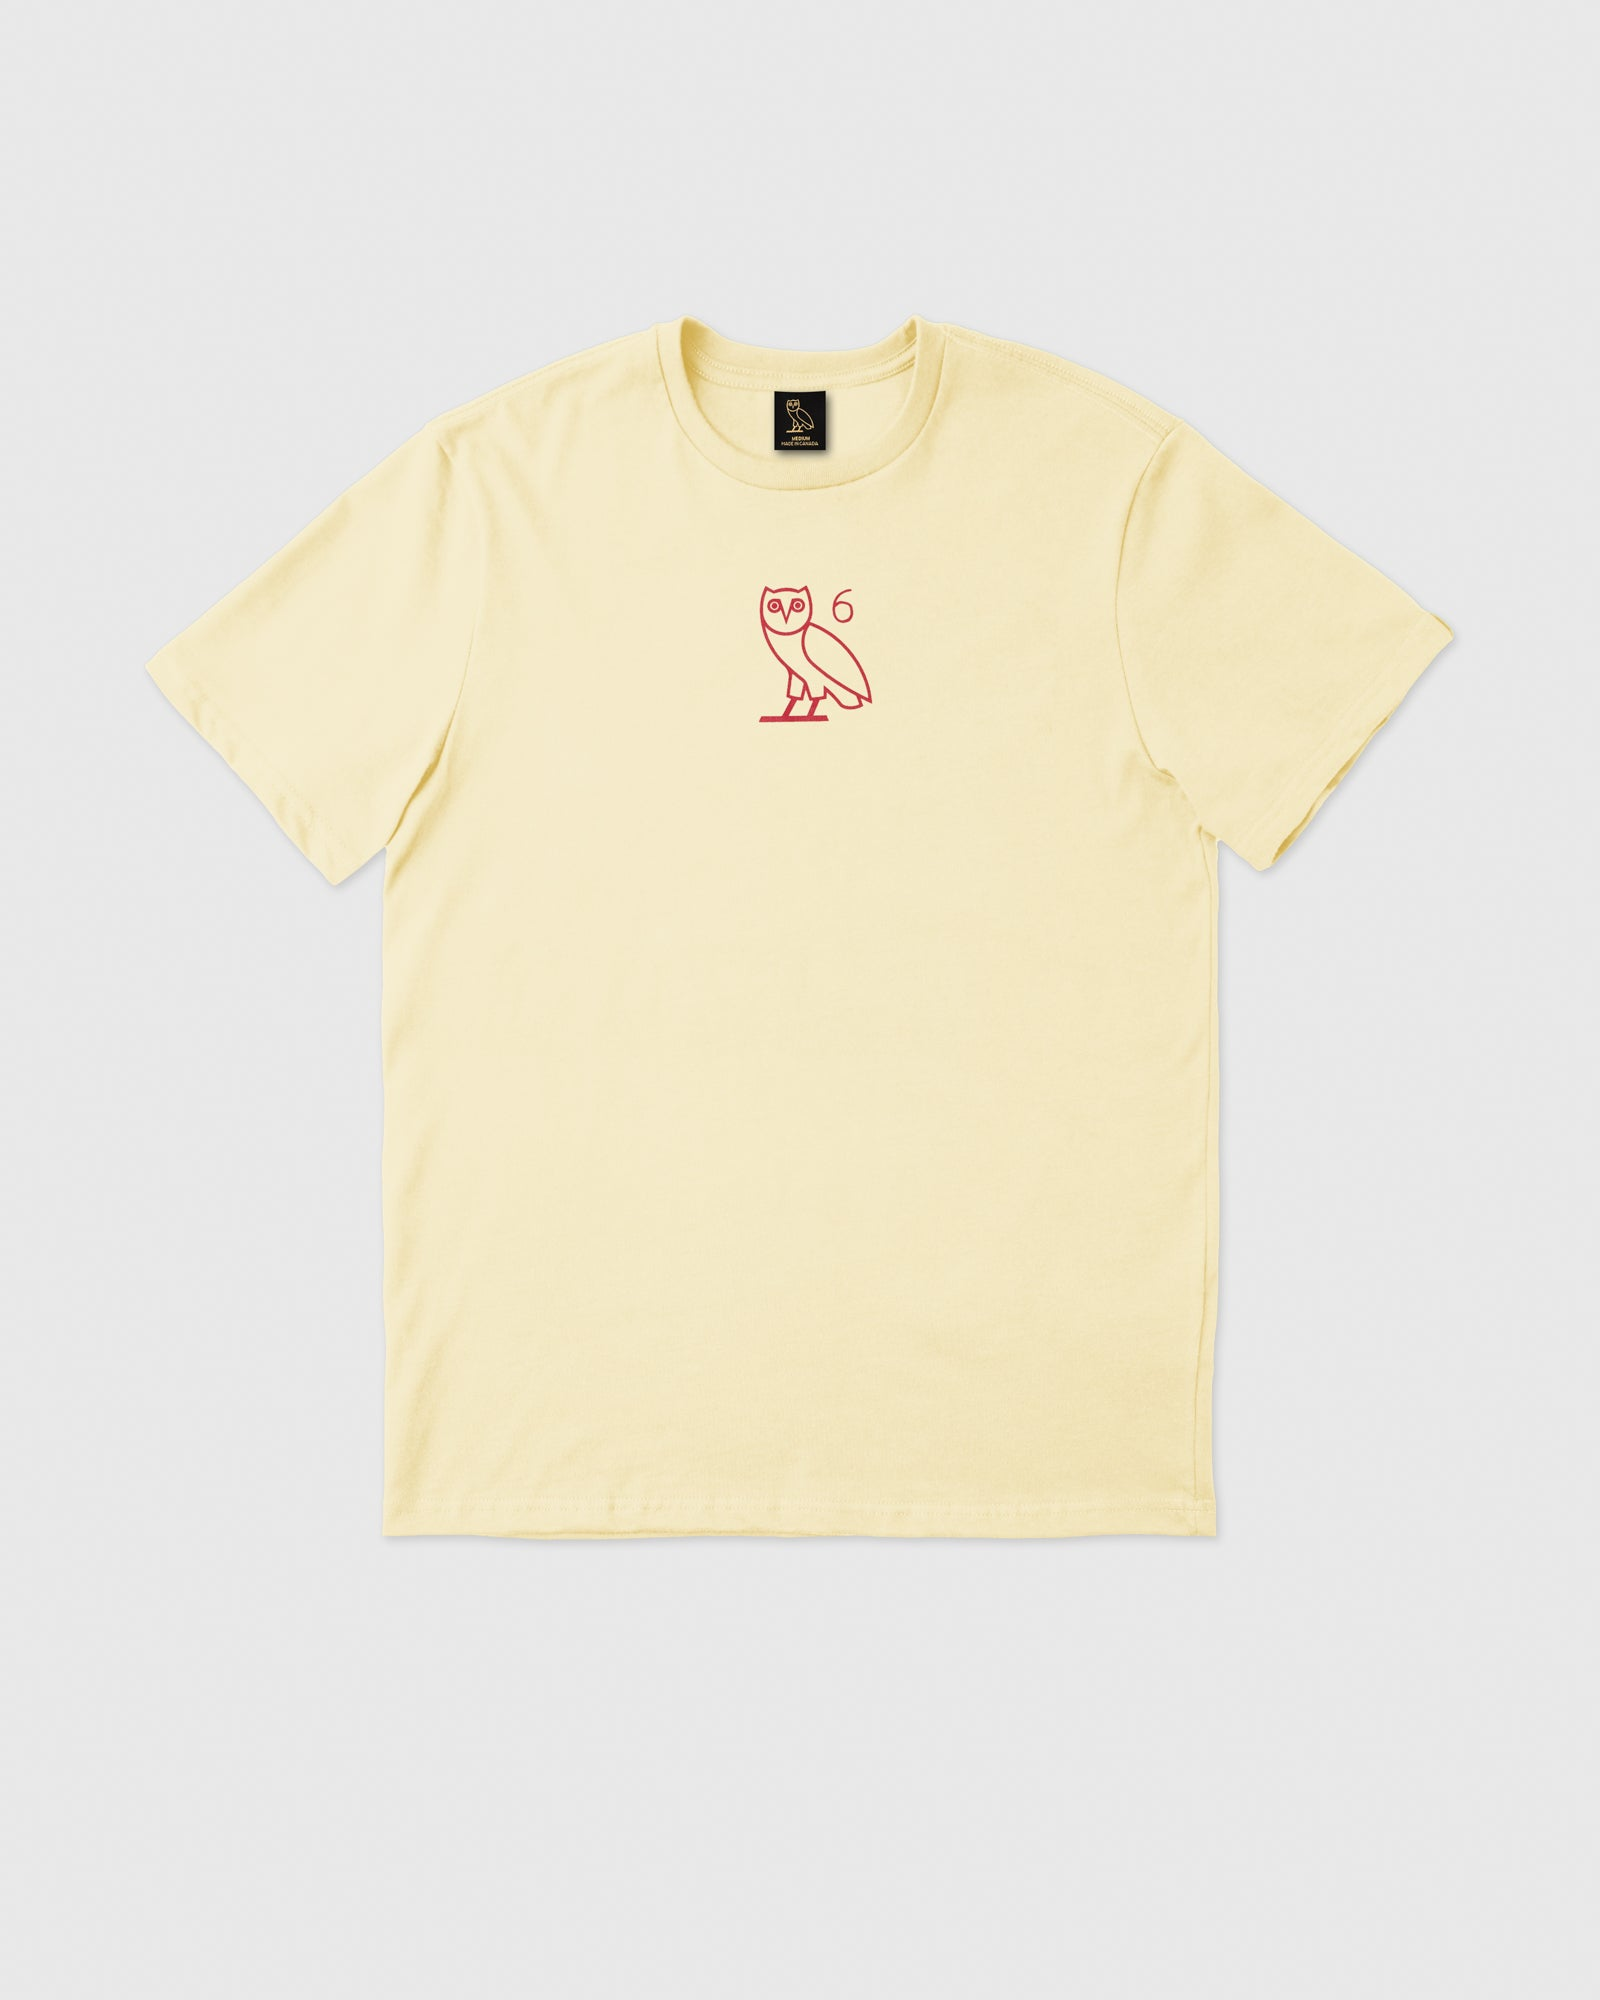 6 OWL T-SHIRT - CREAM IMAGE #1